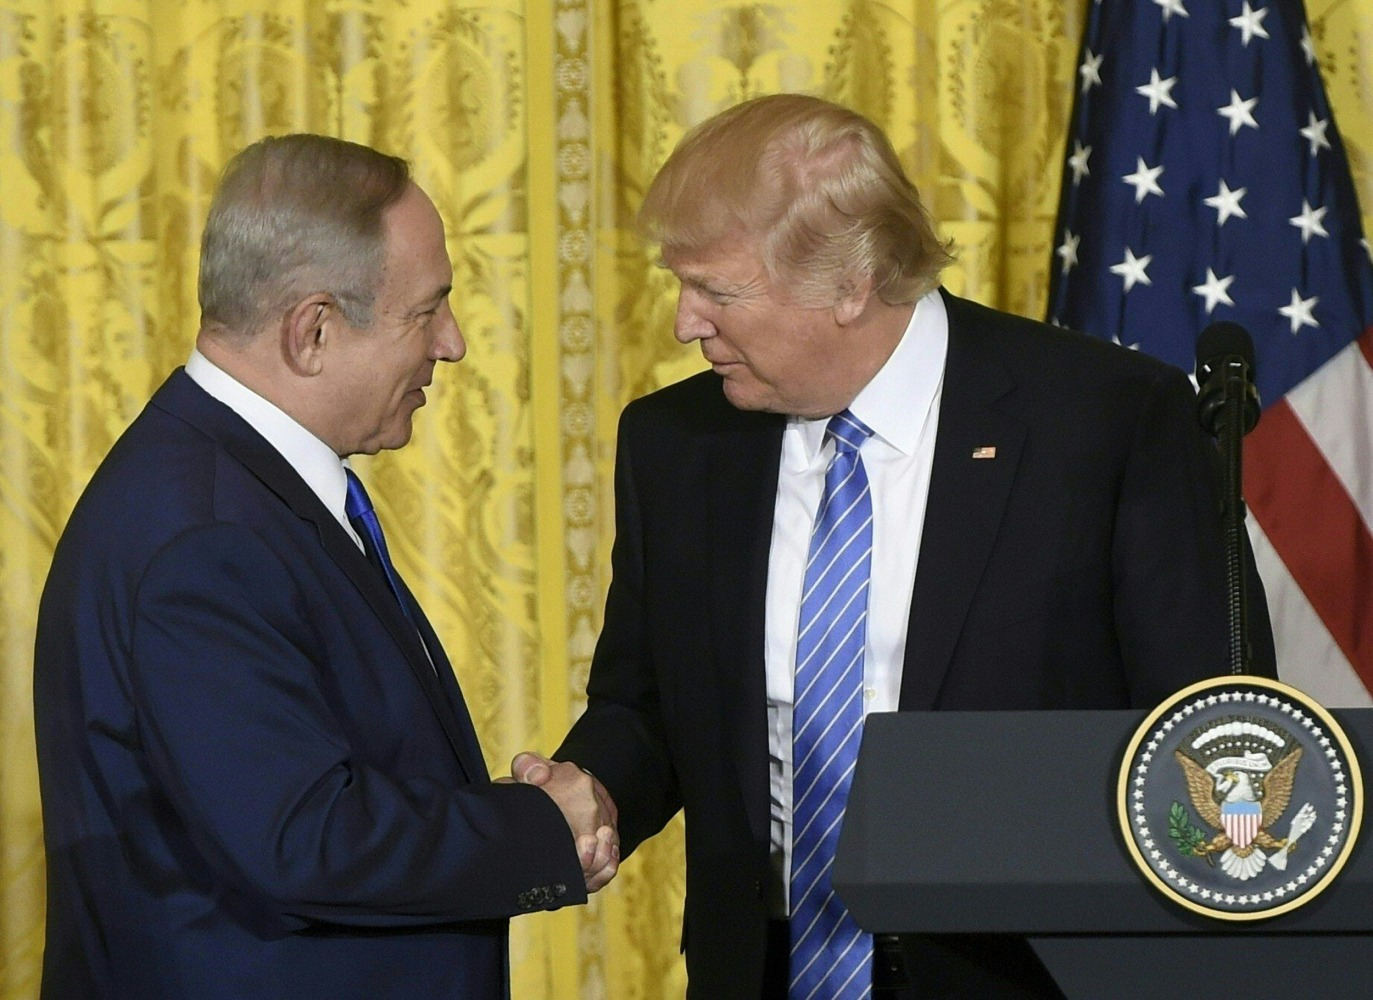 Israelis on edge before Trump Visit